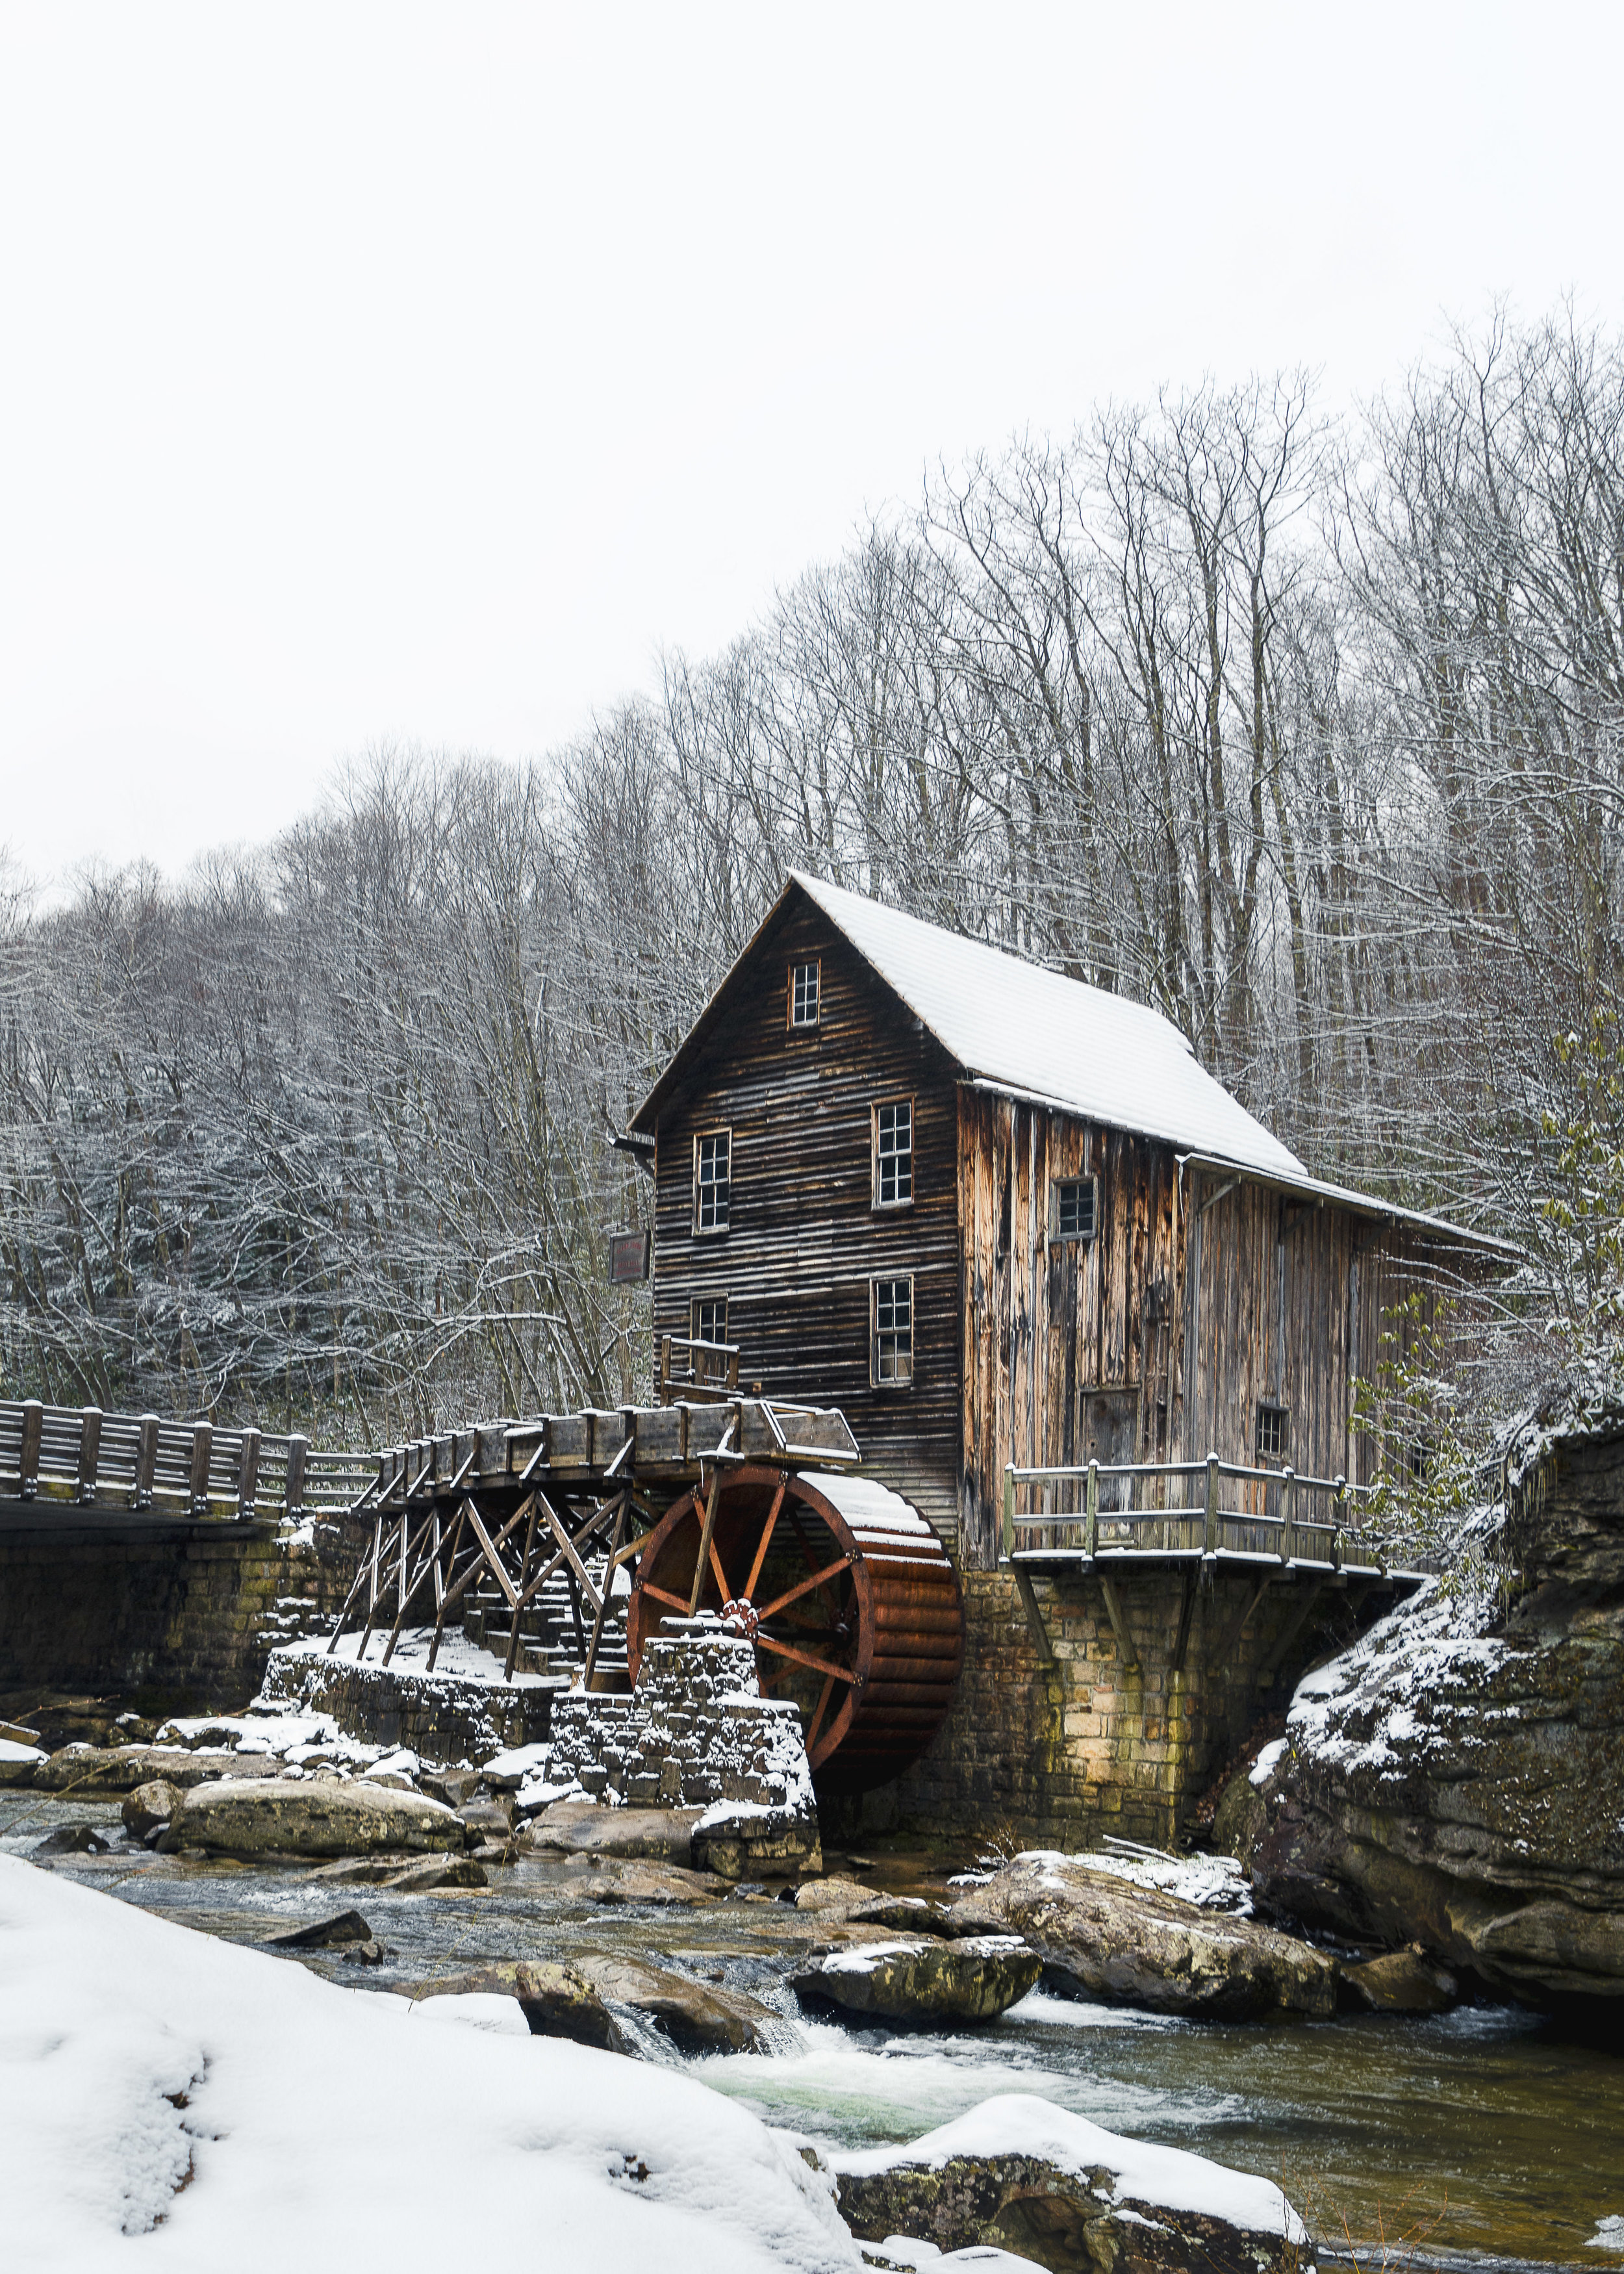 Babcock state park grist mill during the winter with fresh snow